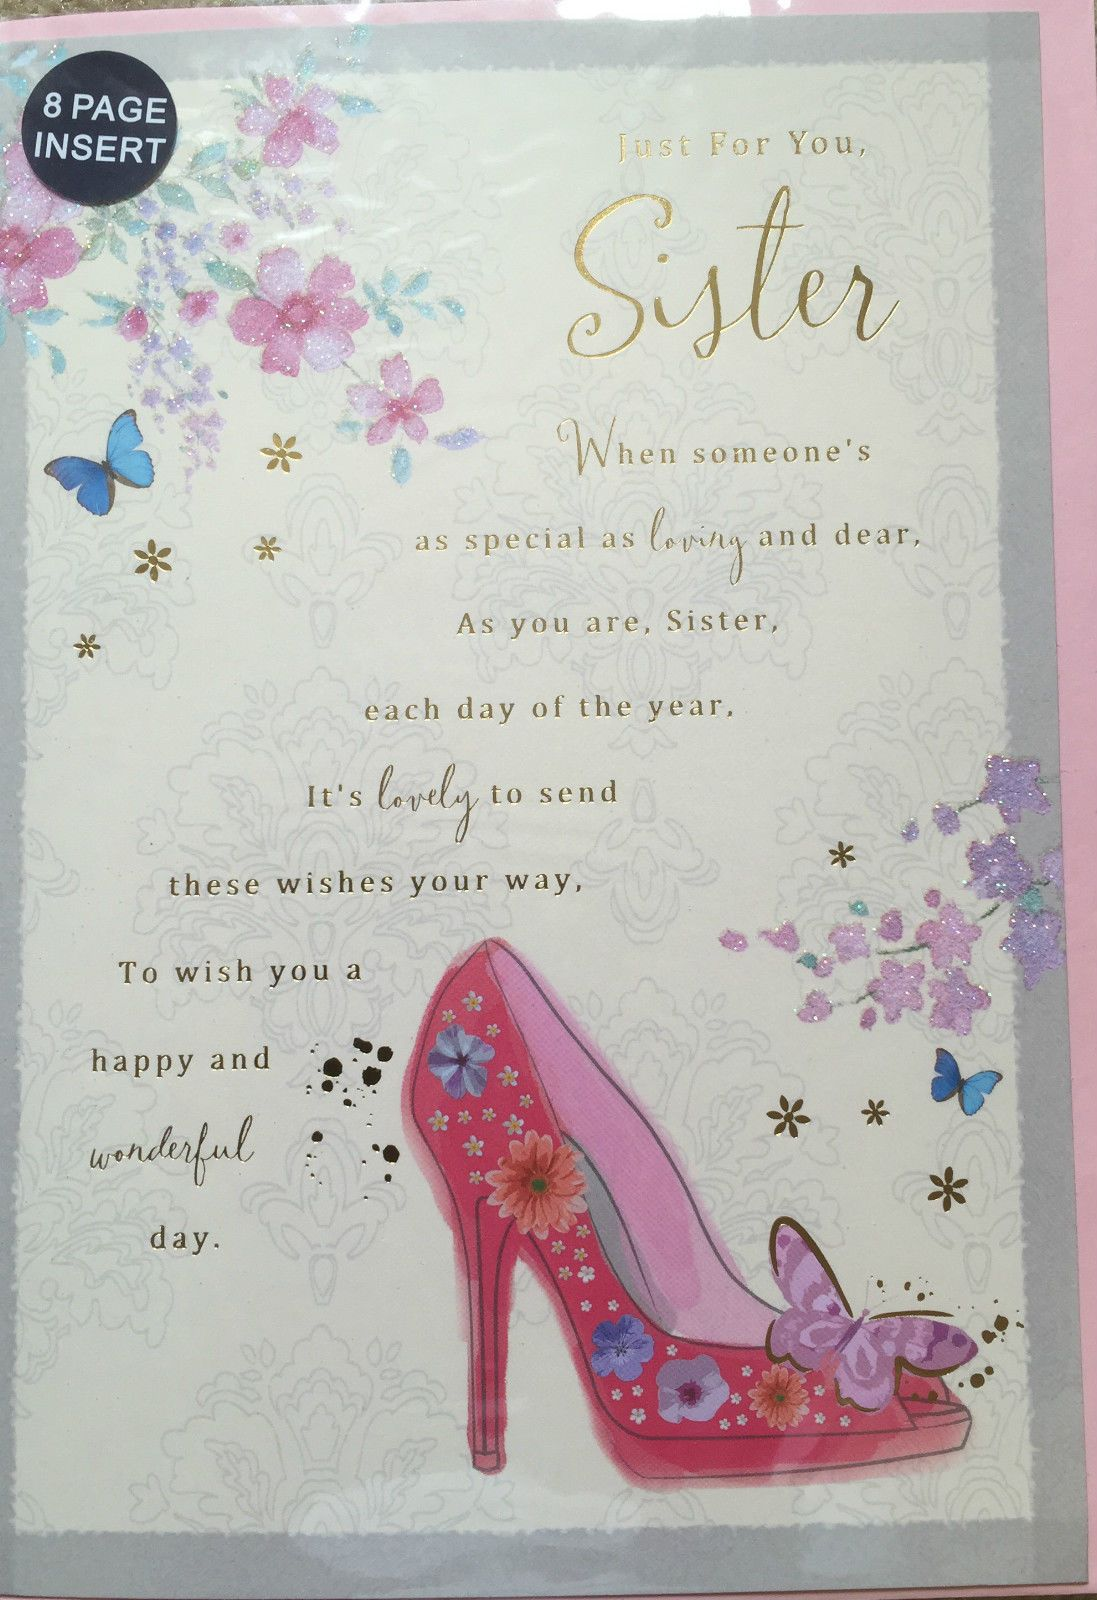 JUST FOR YOU SISTER BIRTHDAY CARD 8 PAGE INSERT LOVELY VERSE F1 SHOES